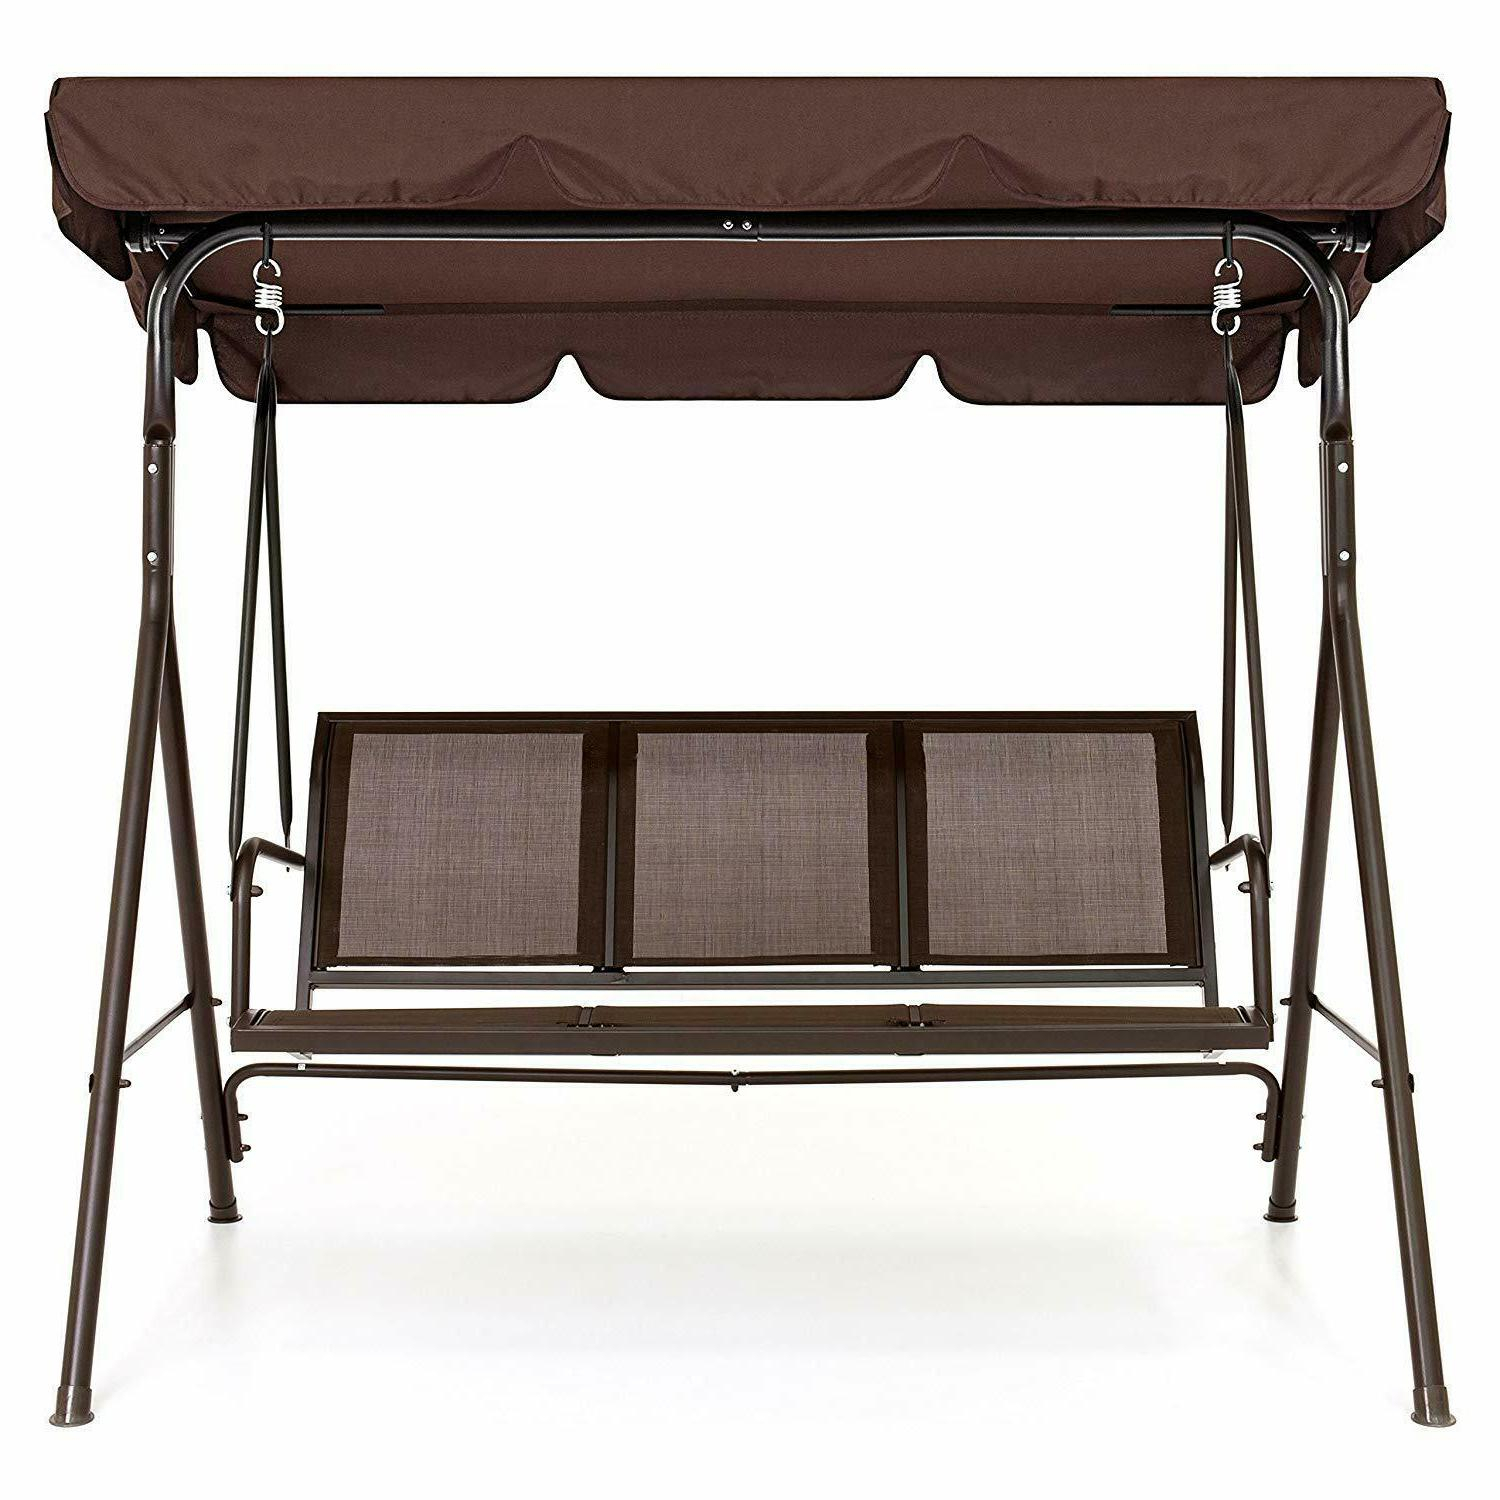 Best Choice Products 2 Person Outdoor Convertible Canopy Porch Swing – Brown In Porch Swings With Canopy (View 14 of 25)